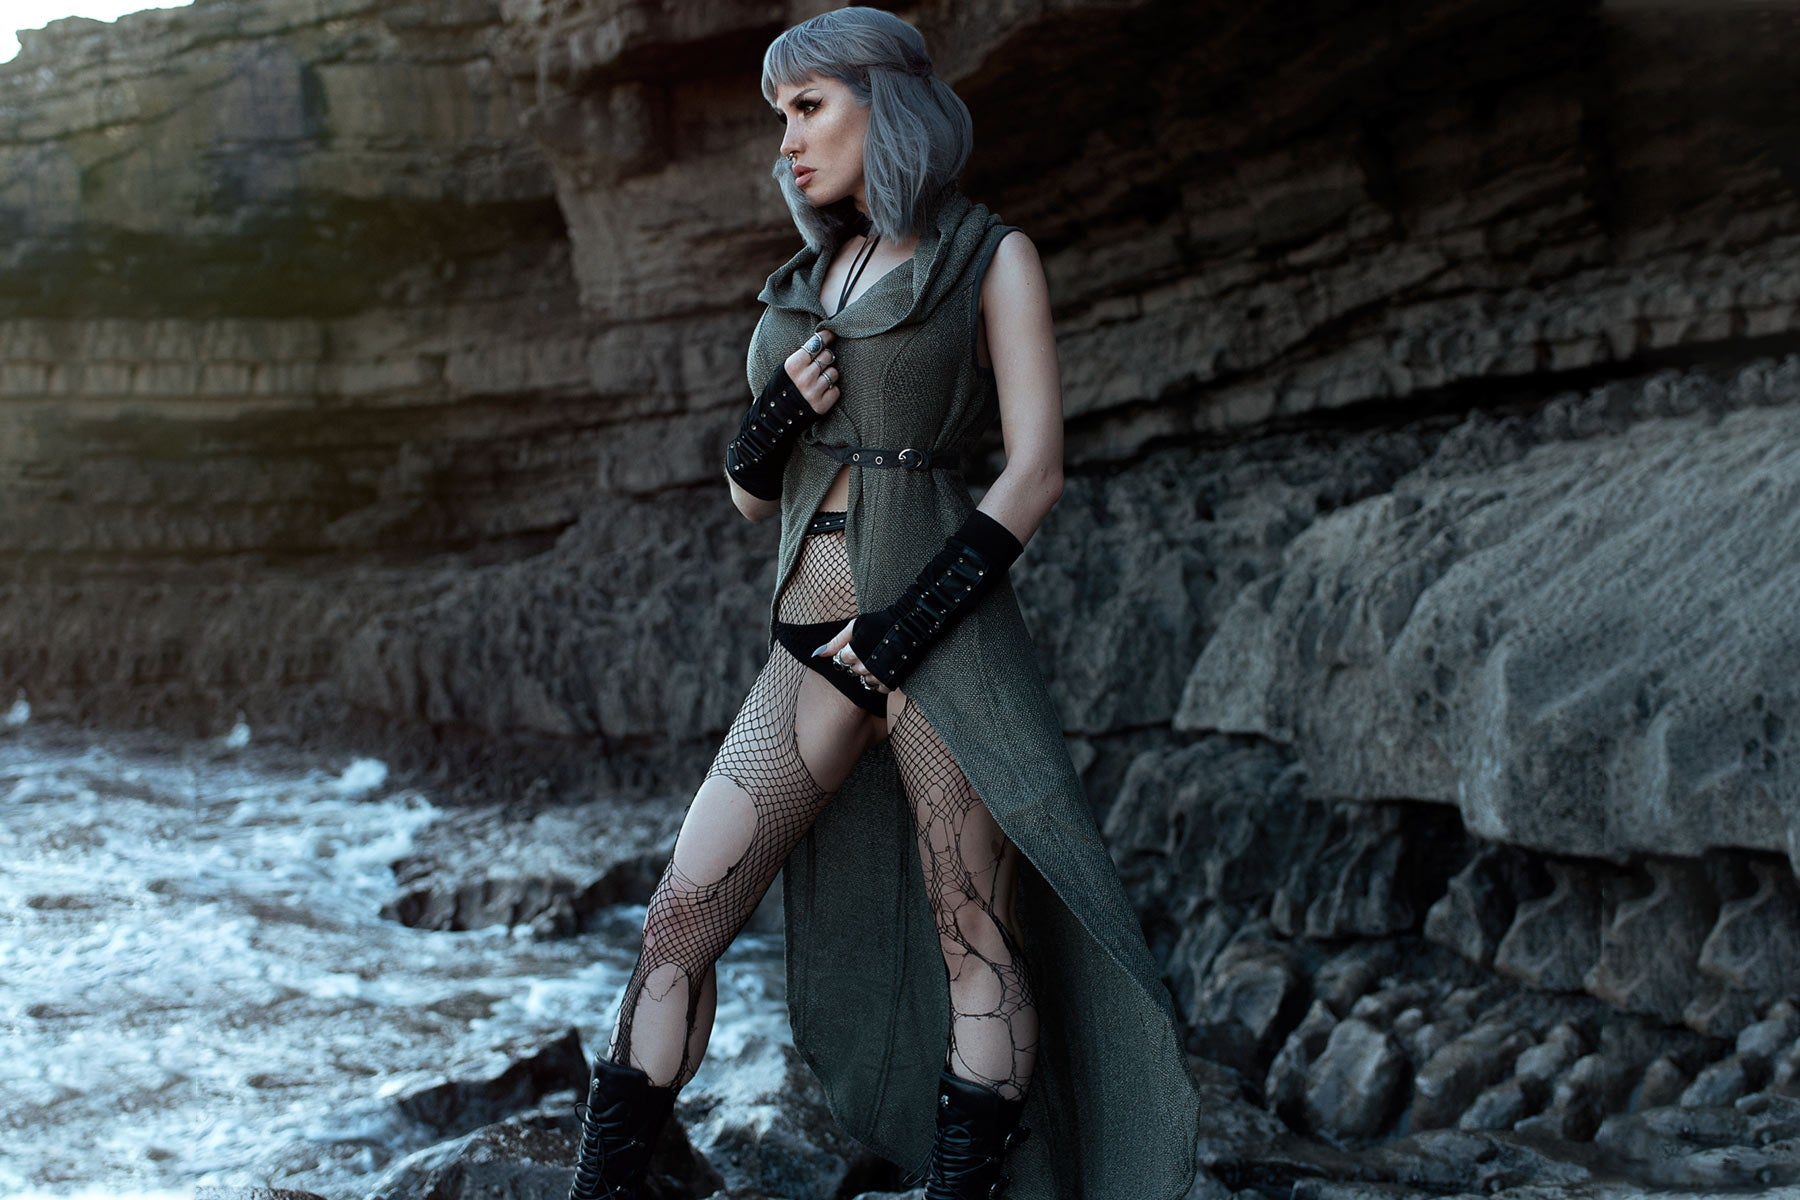 woman on a rocky beach wearing boho-chic gothic clothing by Alekai